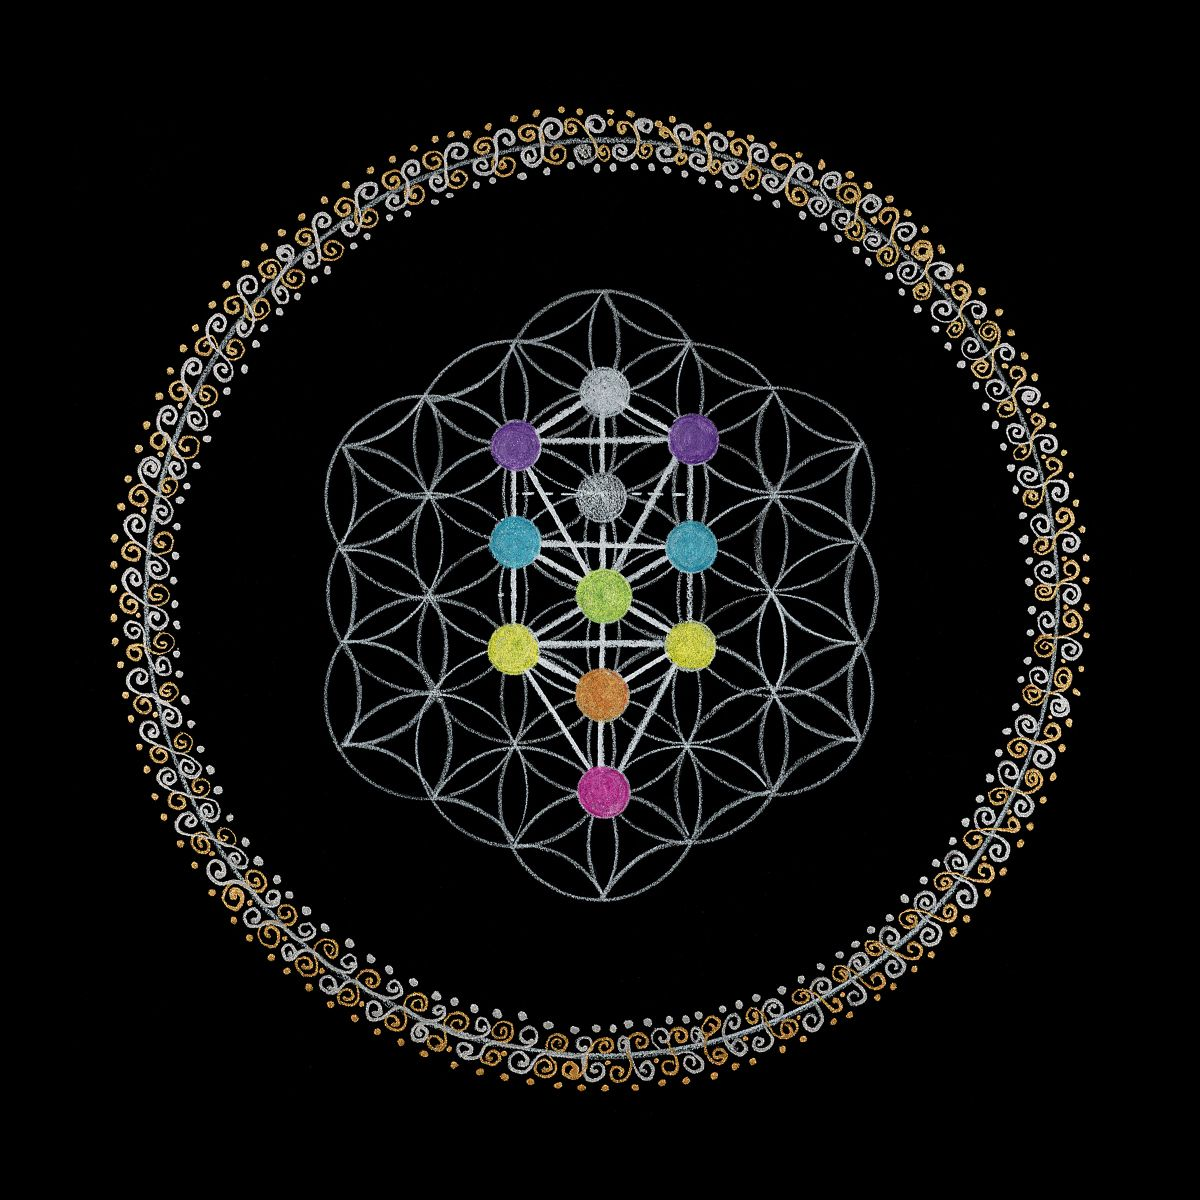 Pin By Soul Journey On Knowledge: Geometría Sagrada, Sagrado Y